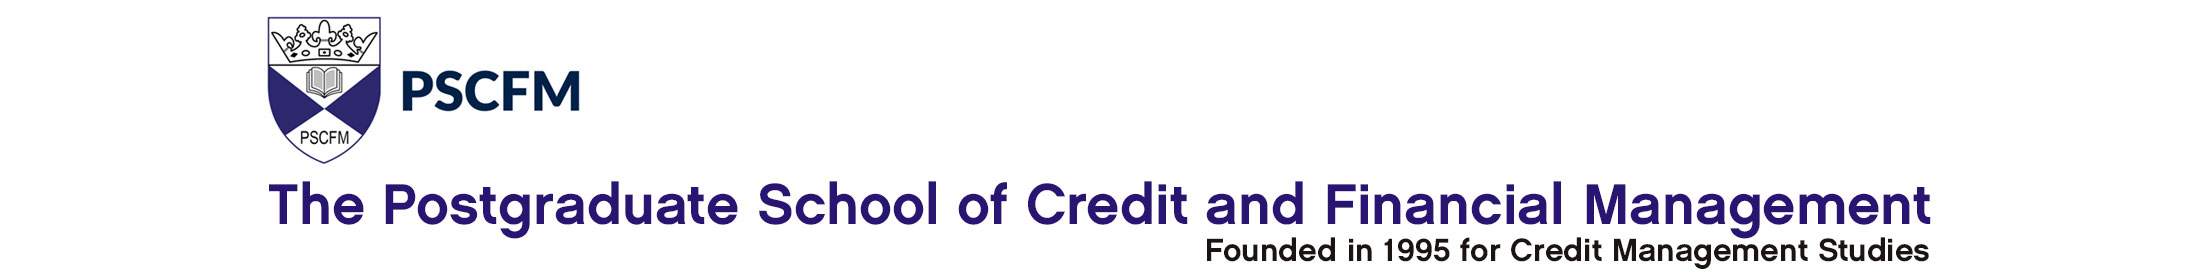 specialized private institution of higher learning, providing world class credit management education.